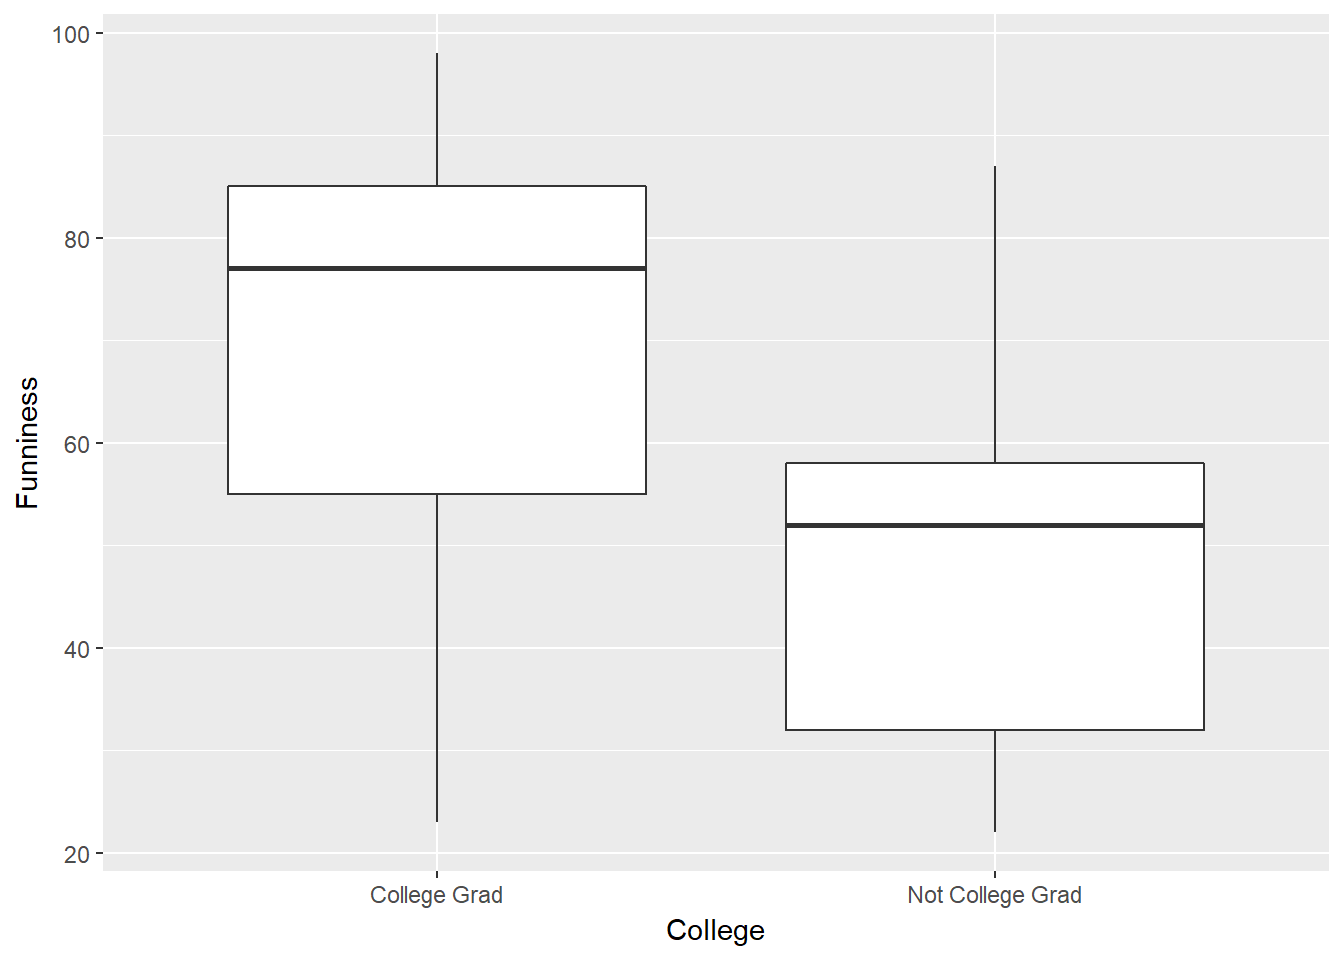 Chapter 11: Boxplots and Bar Graphs